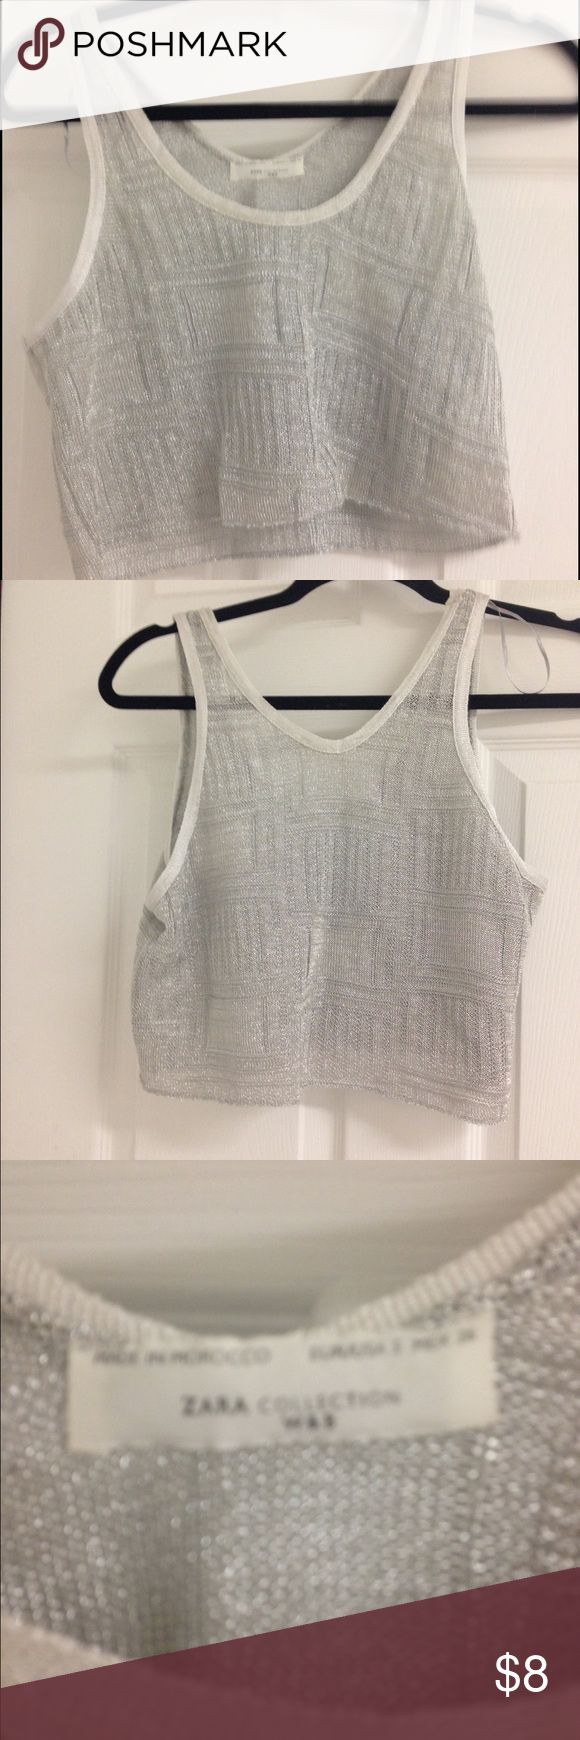 Zara silver crop top Excellent condition. It's an open weave top in a metallic thread so best worn with a cami or something under Zara Tops Crop Tops